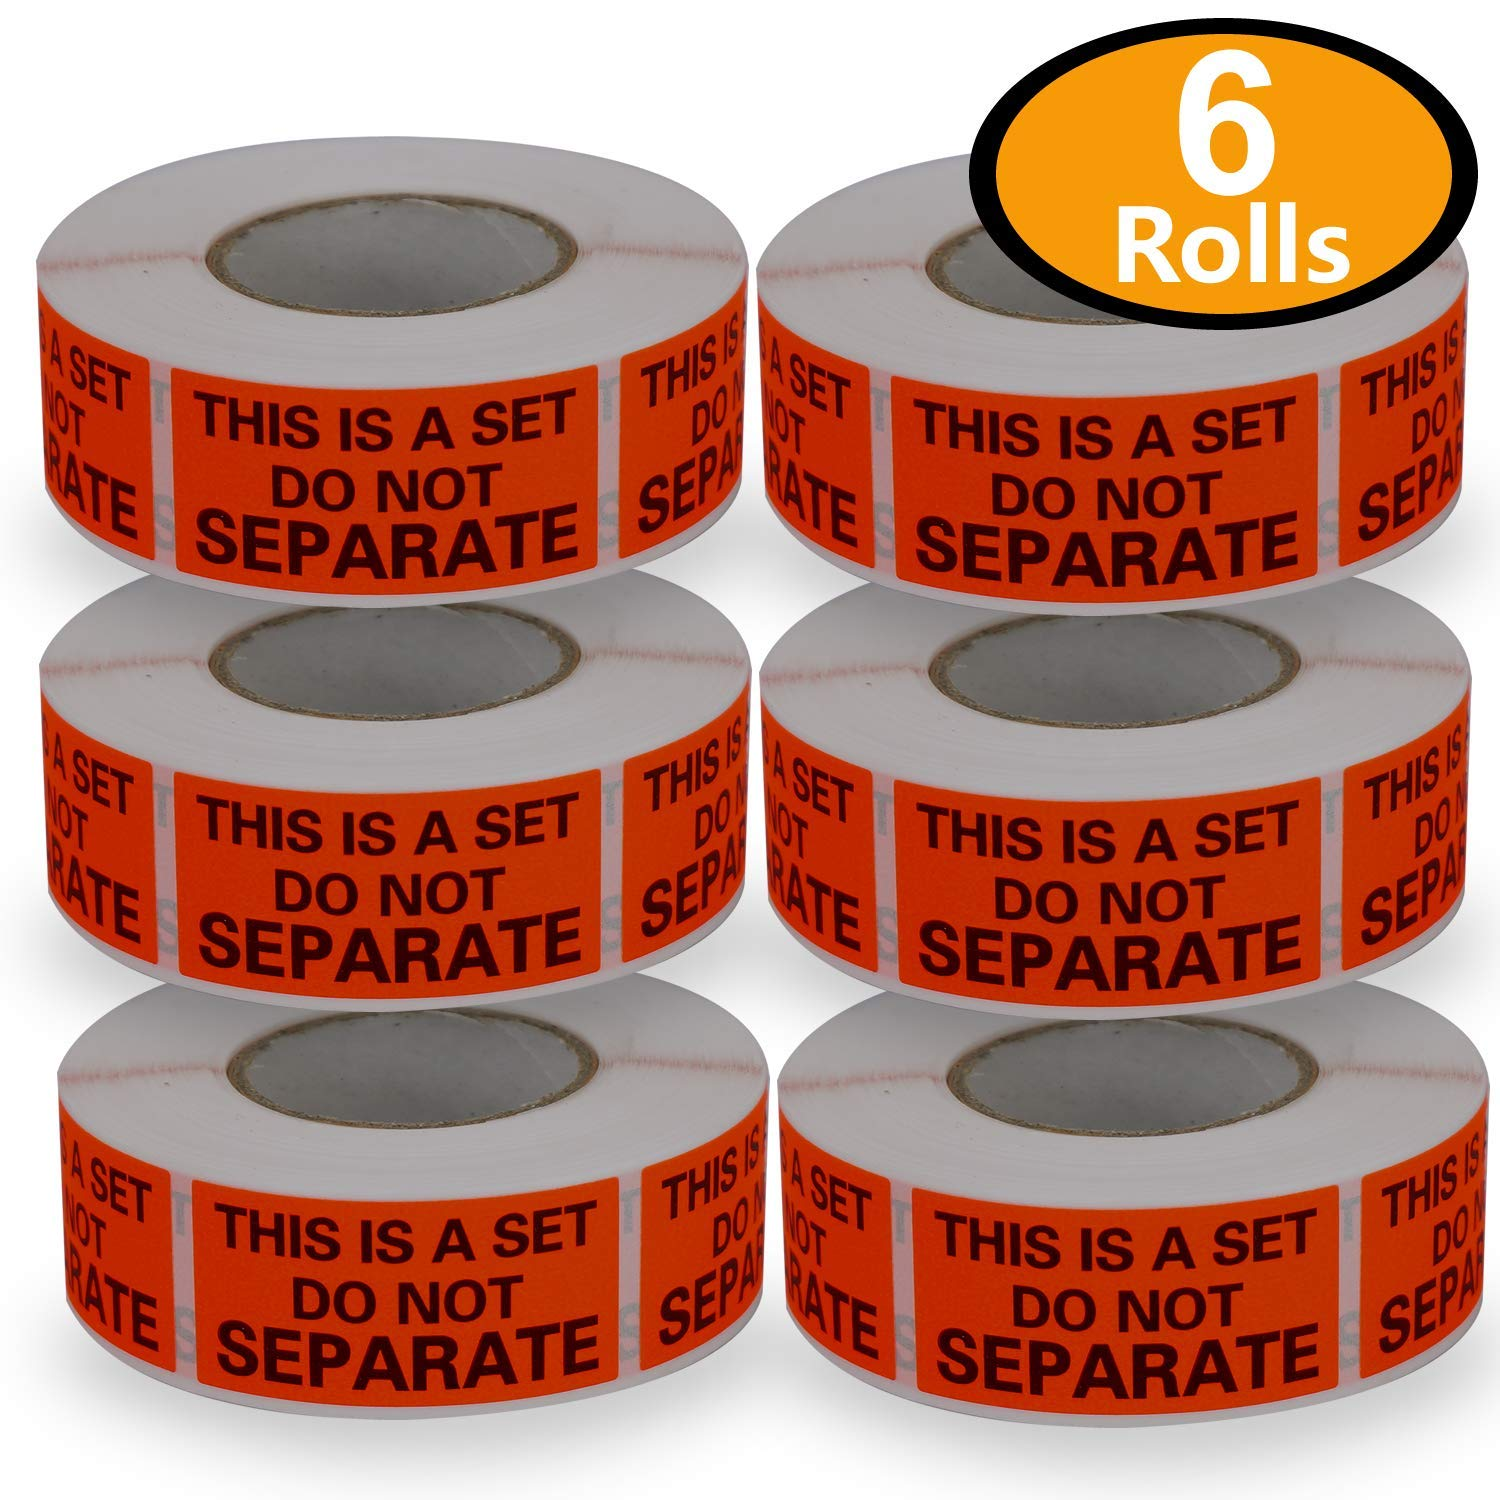 6 Rolls/3000 Labels,This is a Set Do Not Separate,Fluorescent Red FBA Packing Labels(1'' x 2'')